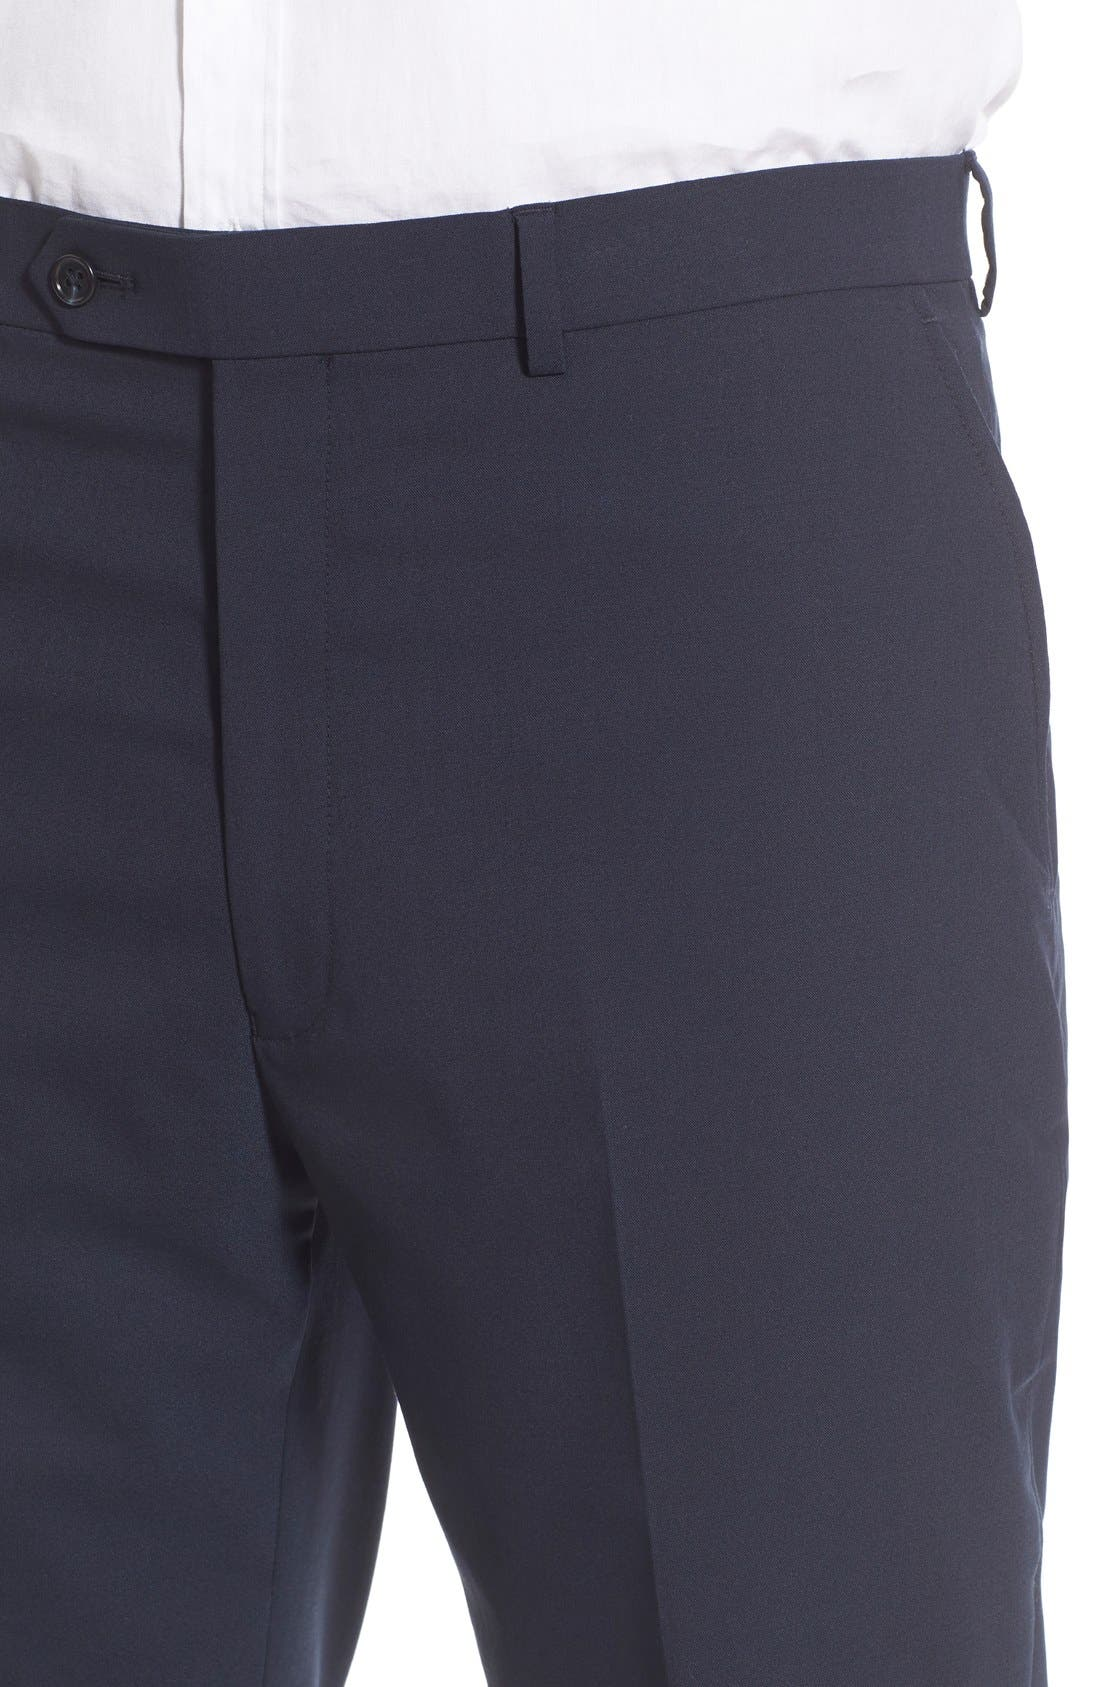 Flat Front Solid Stretch Wool Trousers,                             Alternate thumbnail 5, color,                             NAVY SOLID